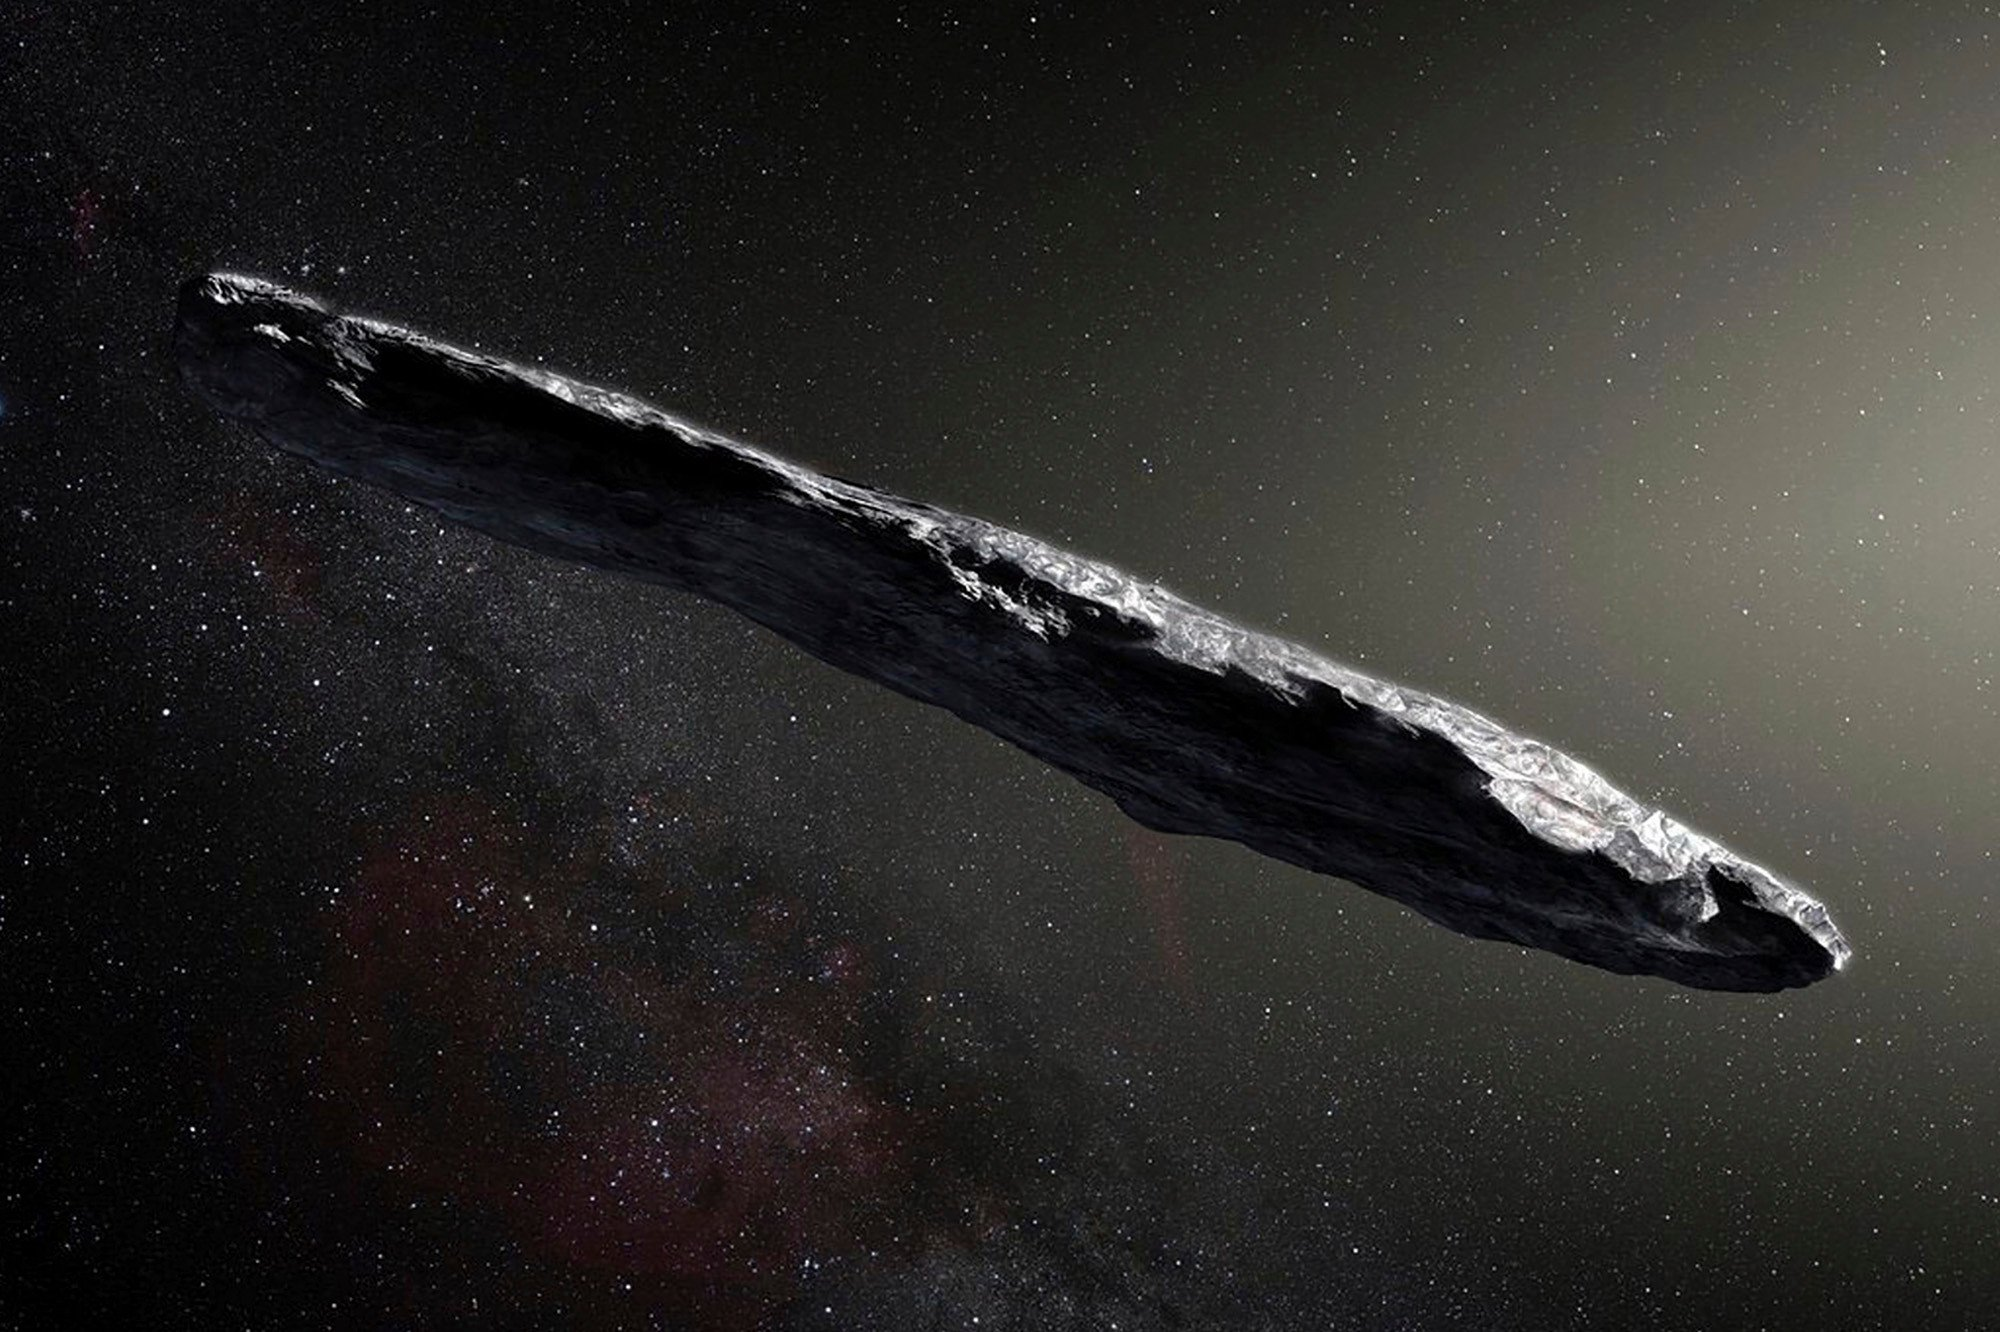 Our first interstellar visitor likely came from two-star system